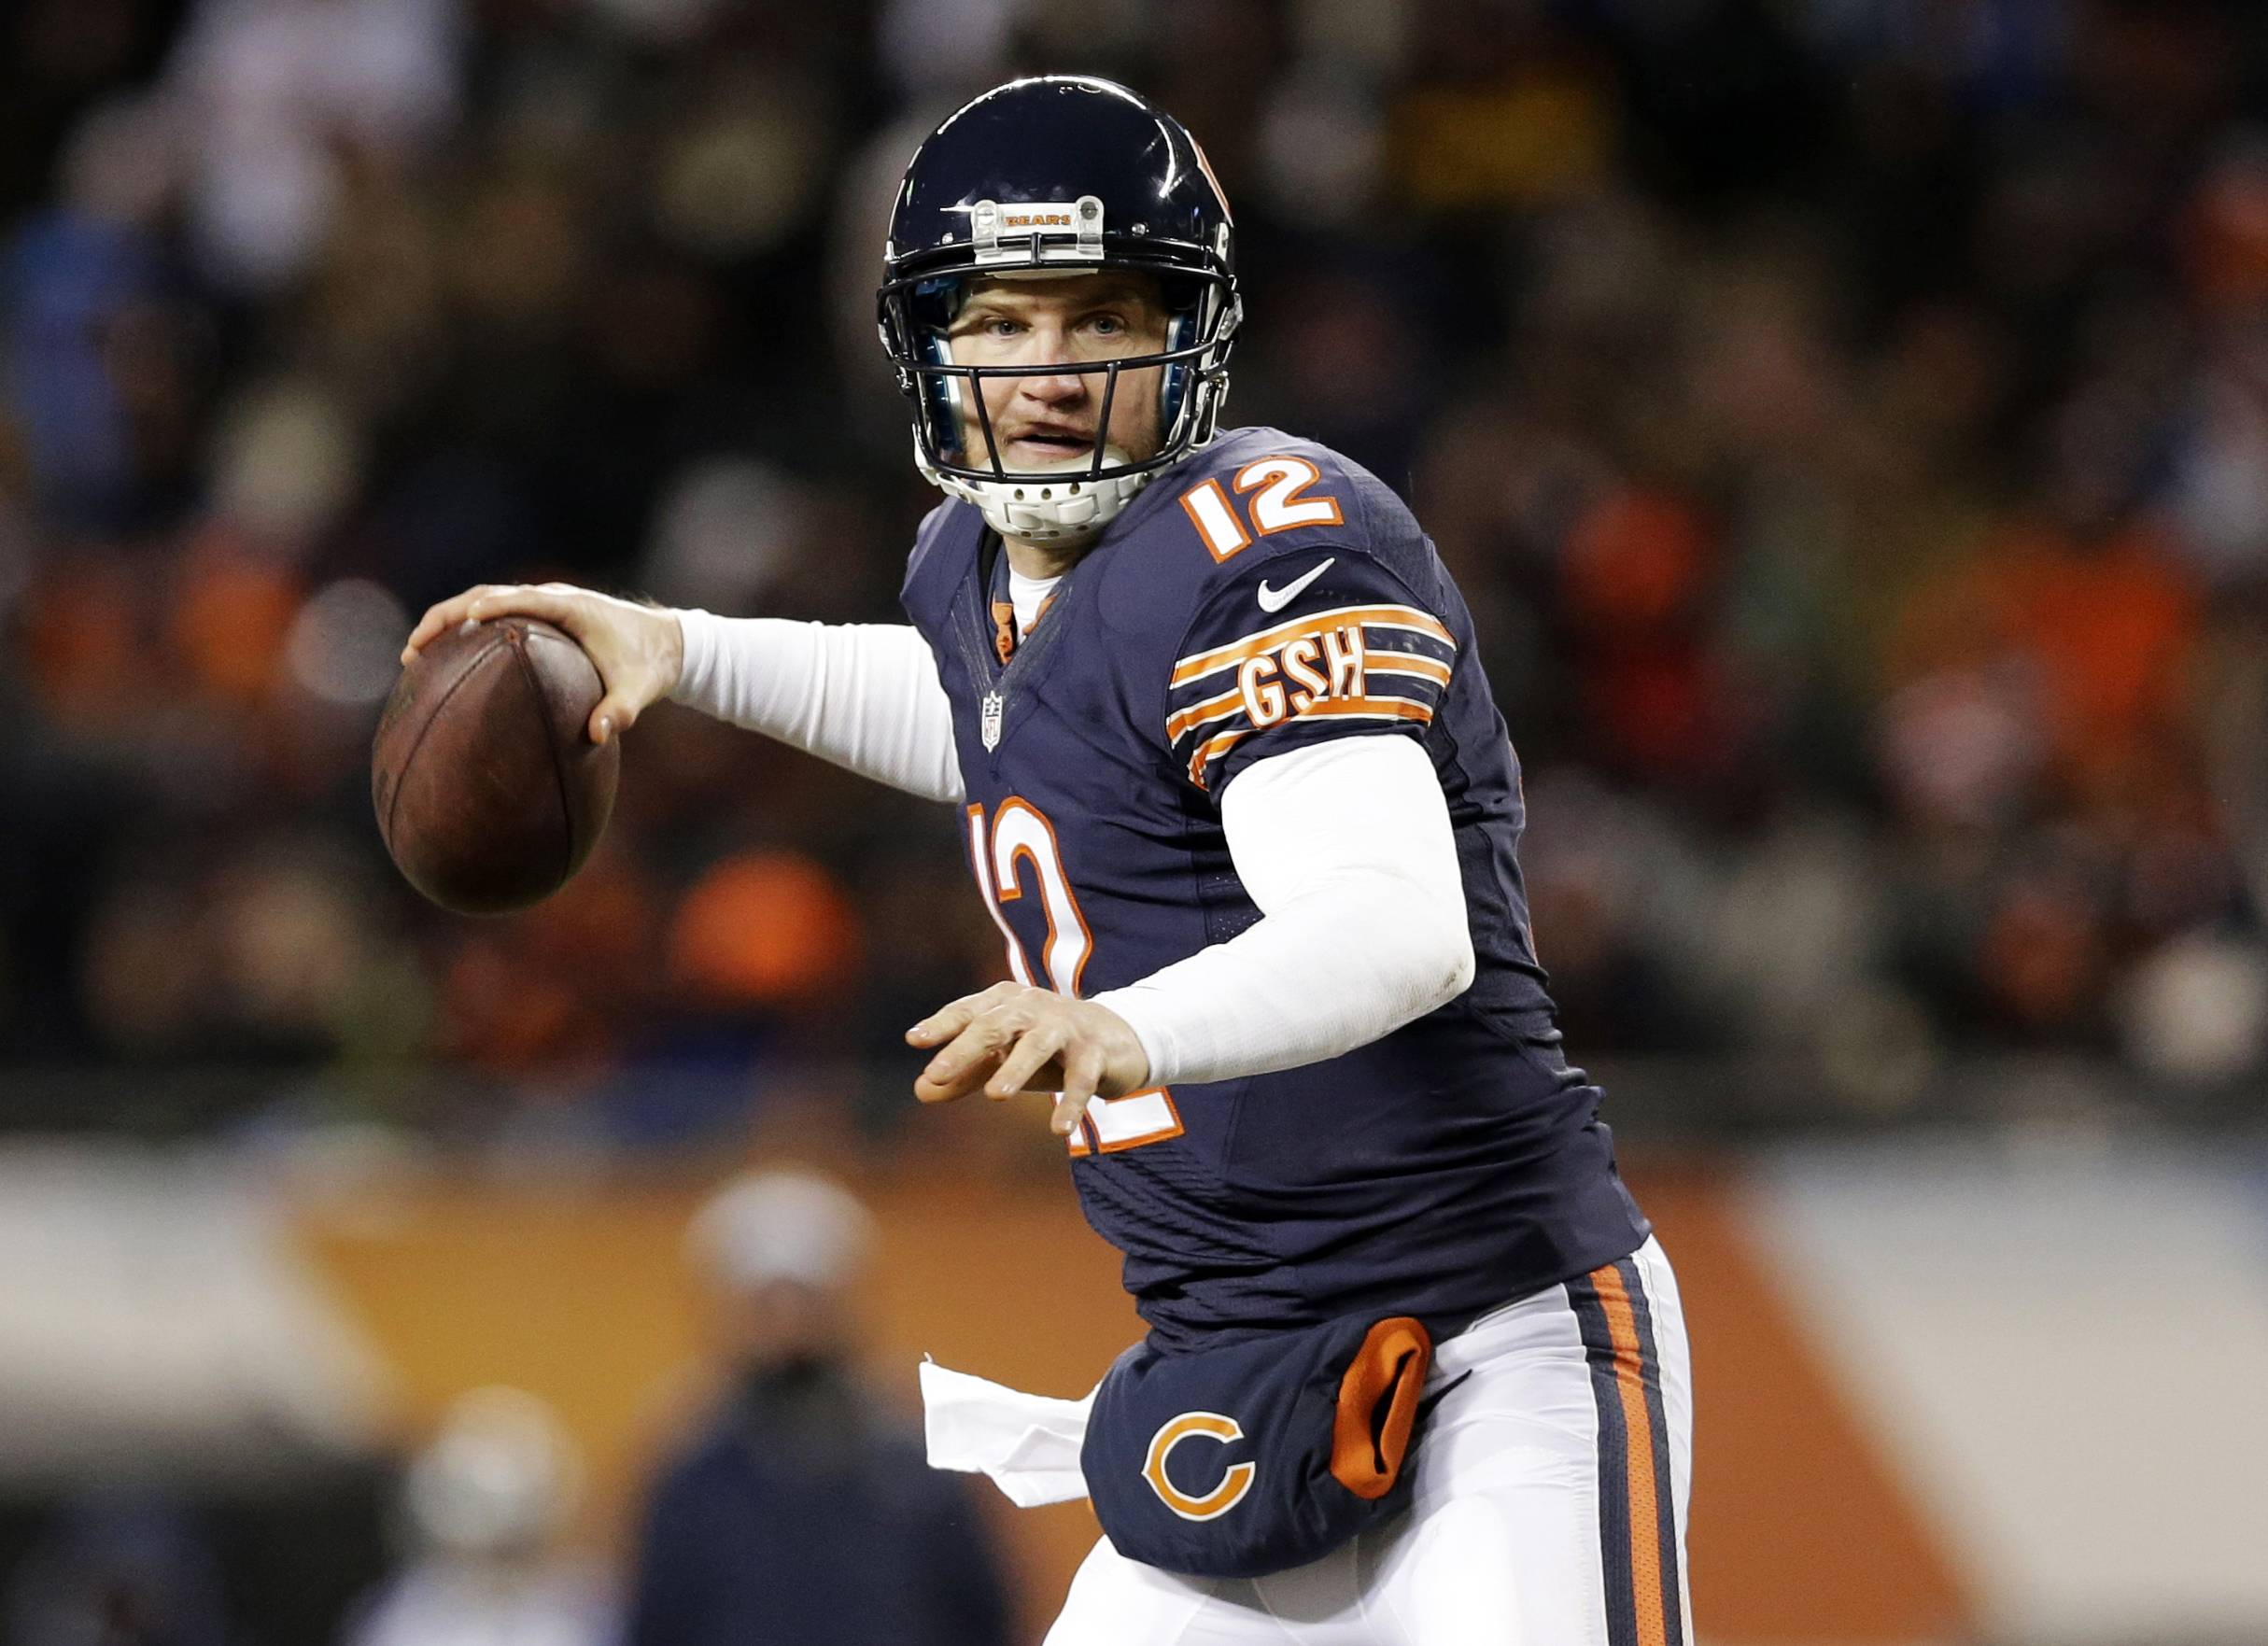 Josh McCown was signed by Tampa Bay on Wednesday to a two-year, $10 million contract.